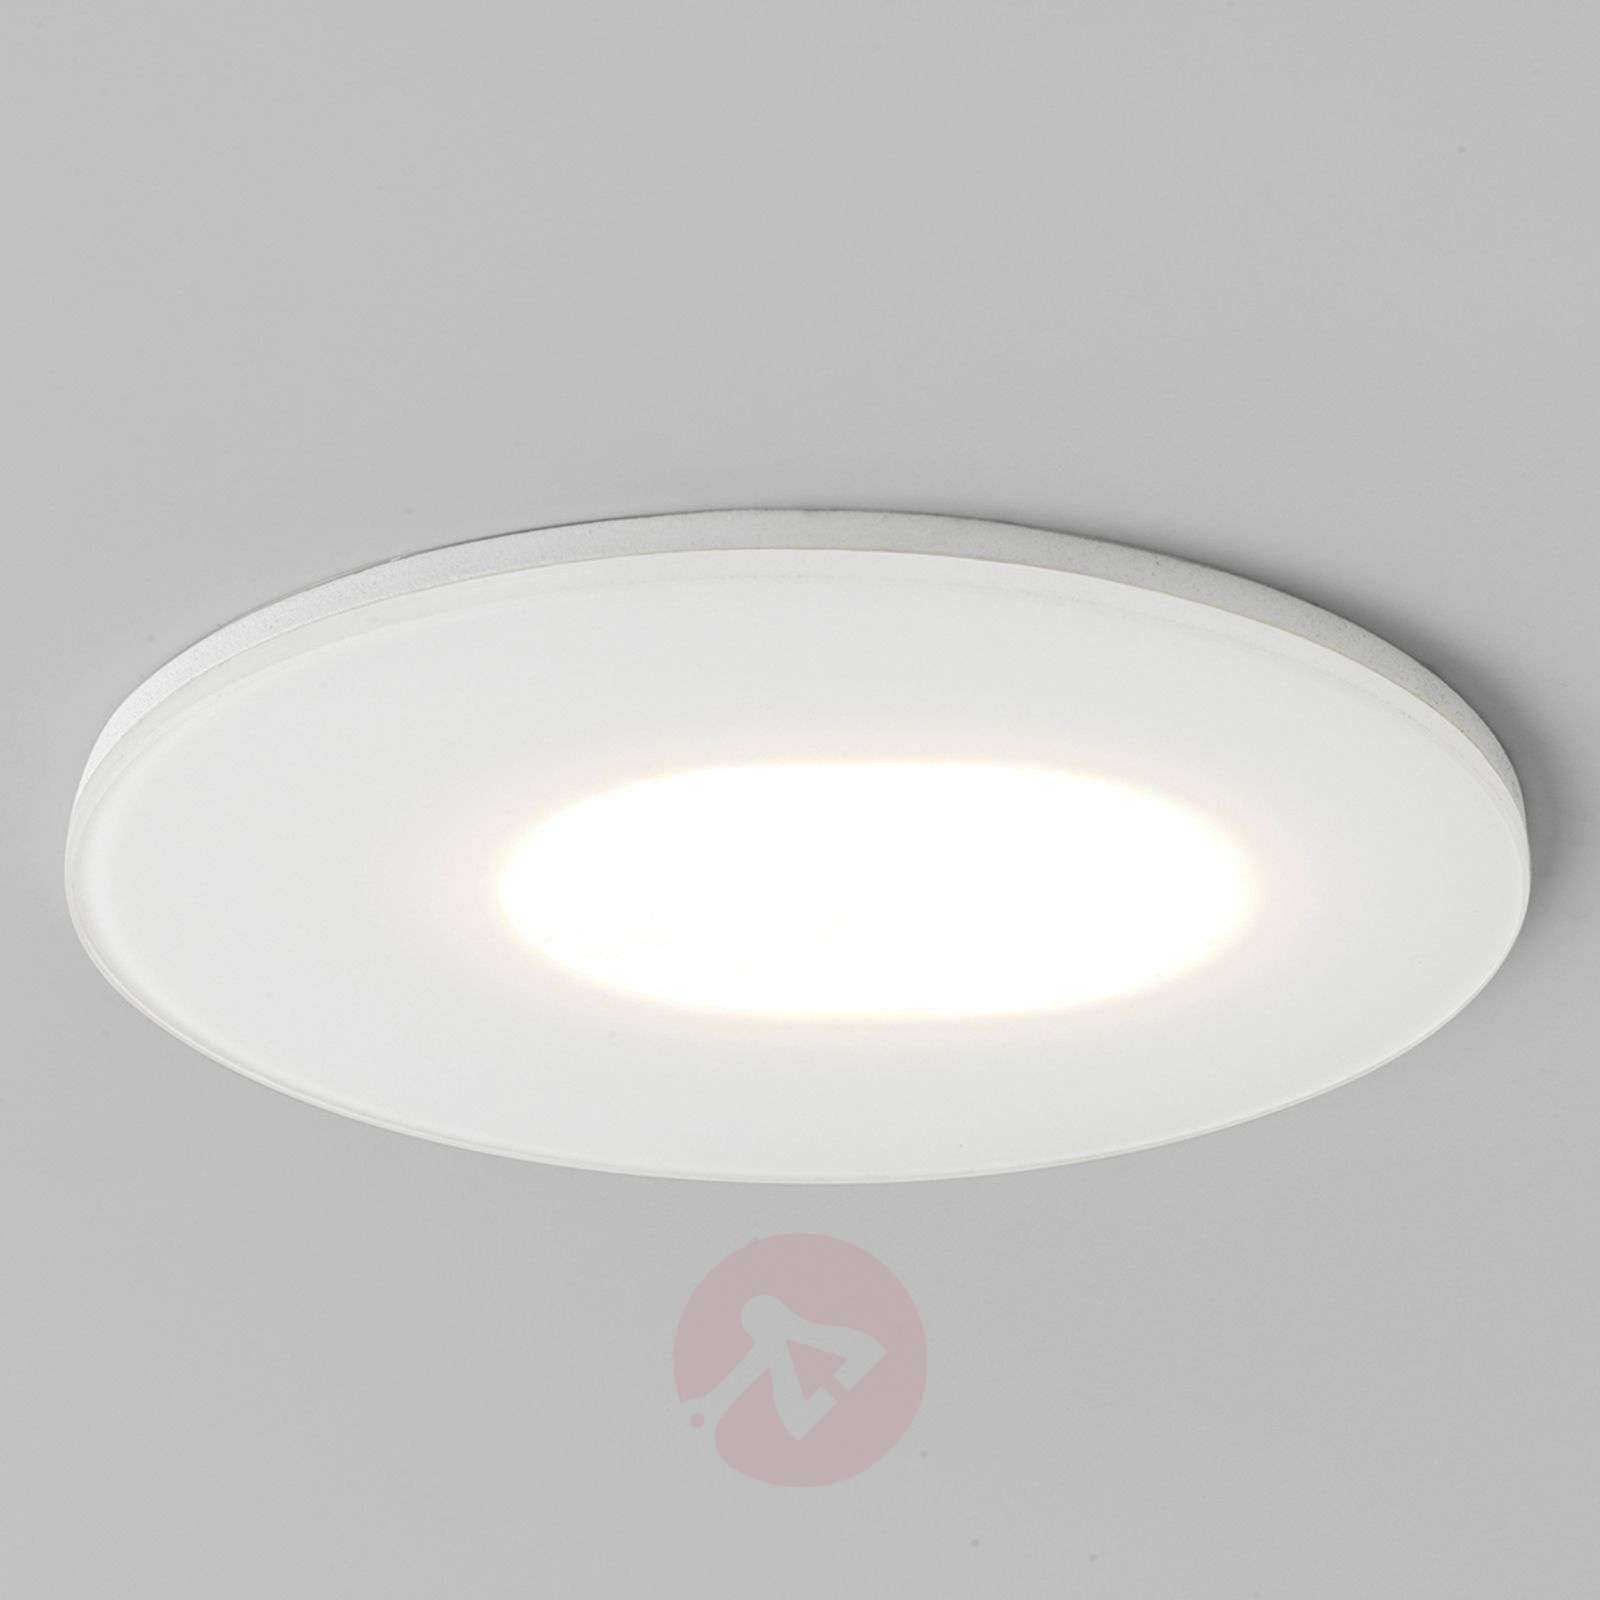 Discreet led recessed ceiling light mayfair lights discreet led recessed ceiling light mayfair 1020543 01 aloadofball Images